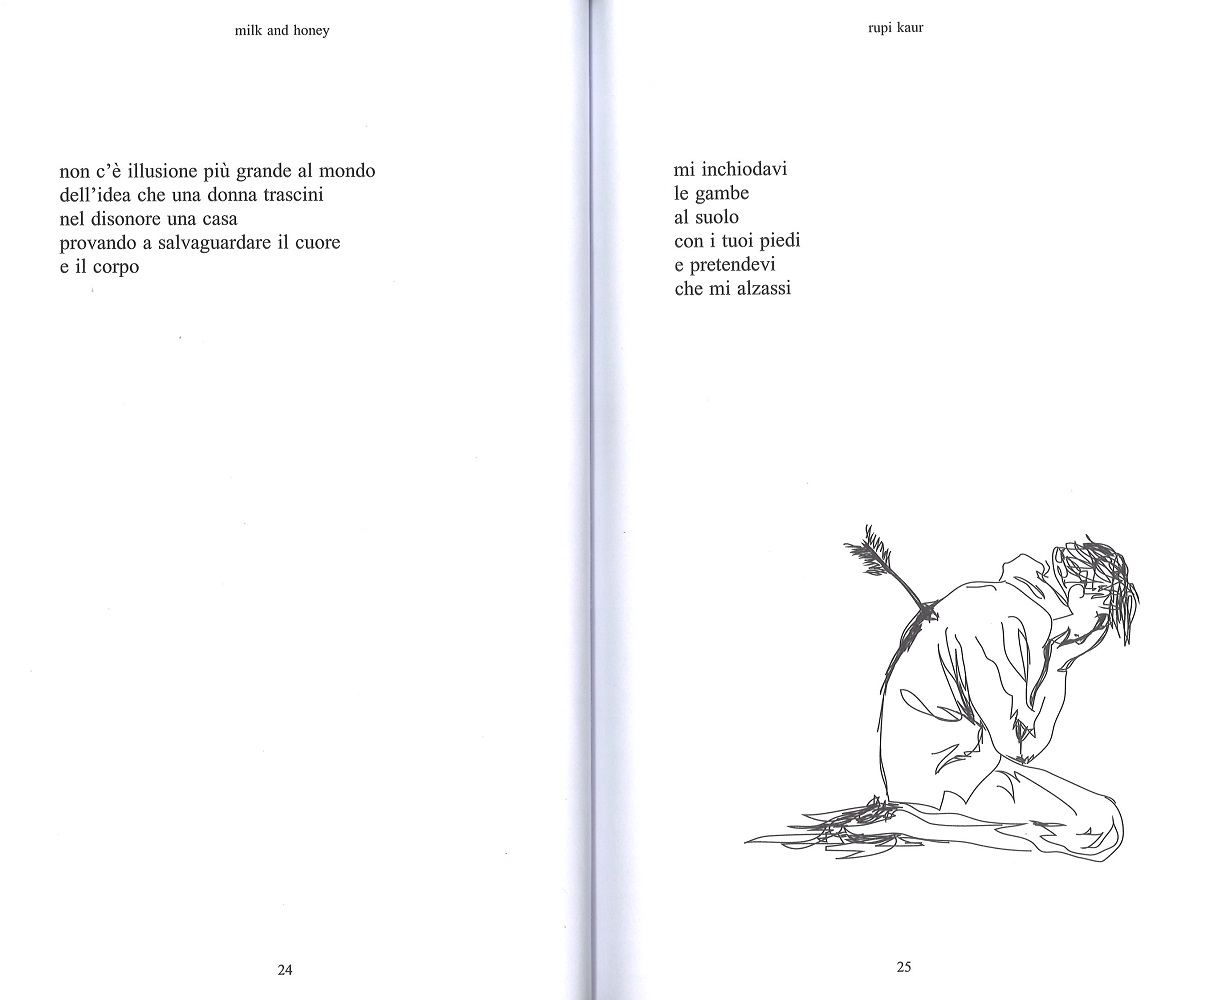 rupi kaur the sun and her flowers pdf free